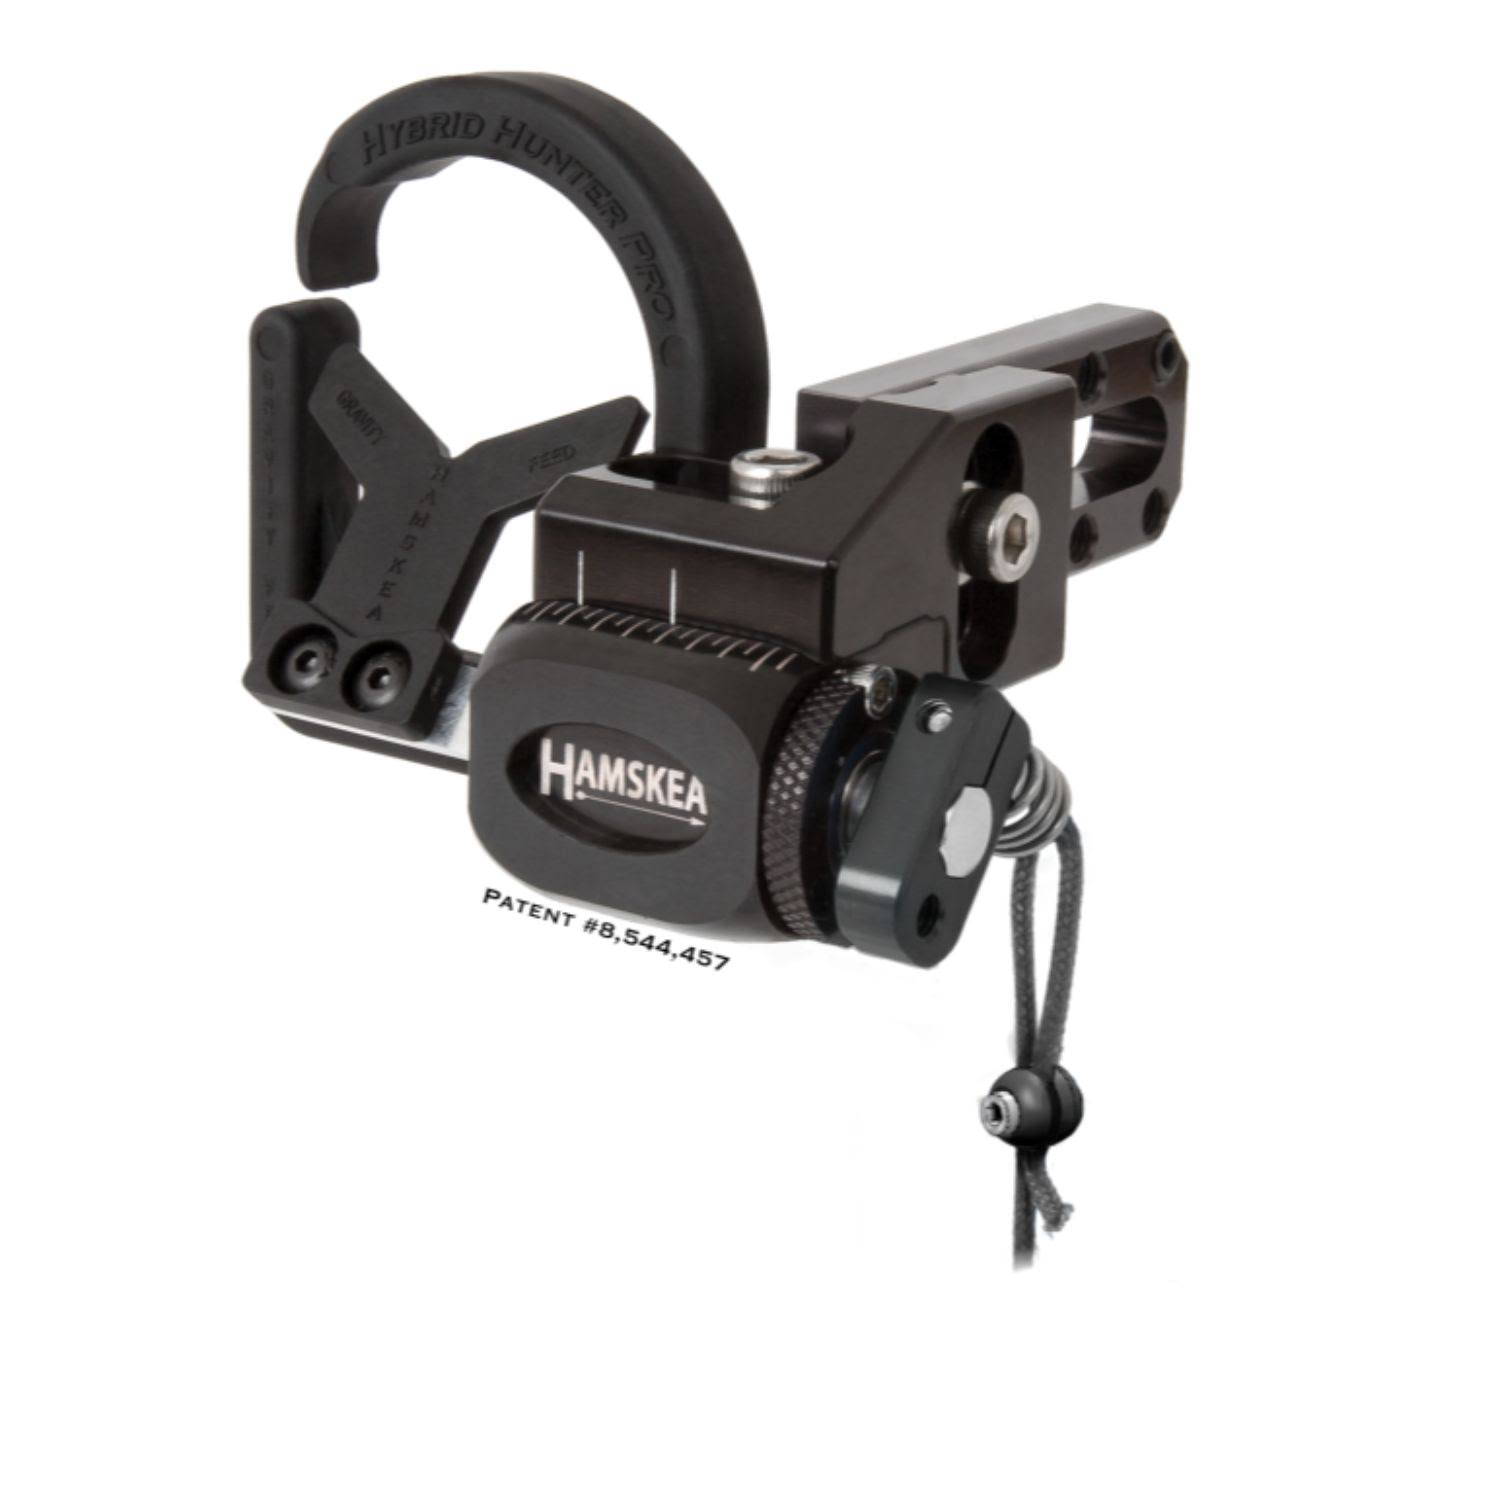 Hamskea Hybrid Hunter Pro Rest - Black, Right Hand